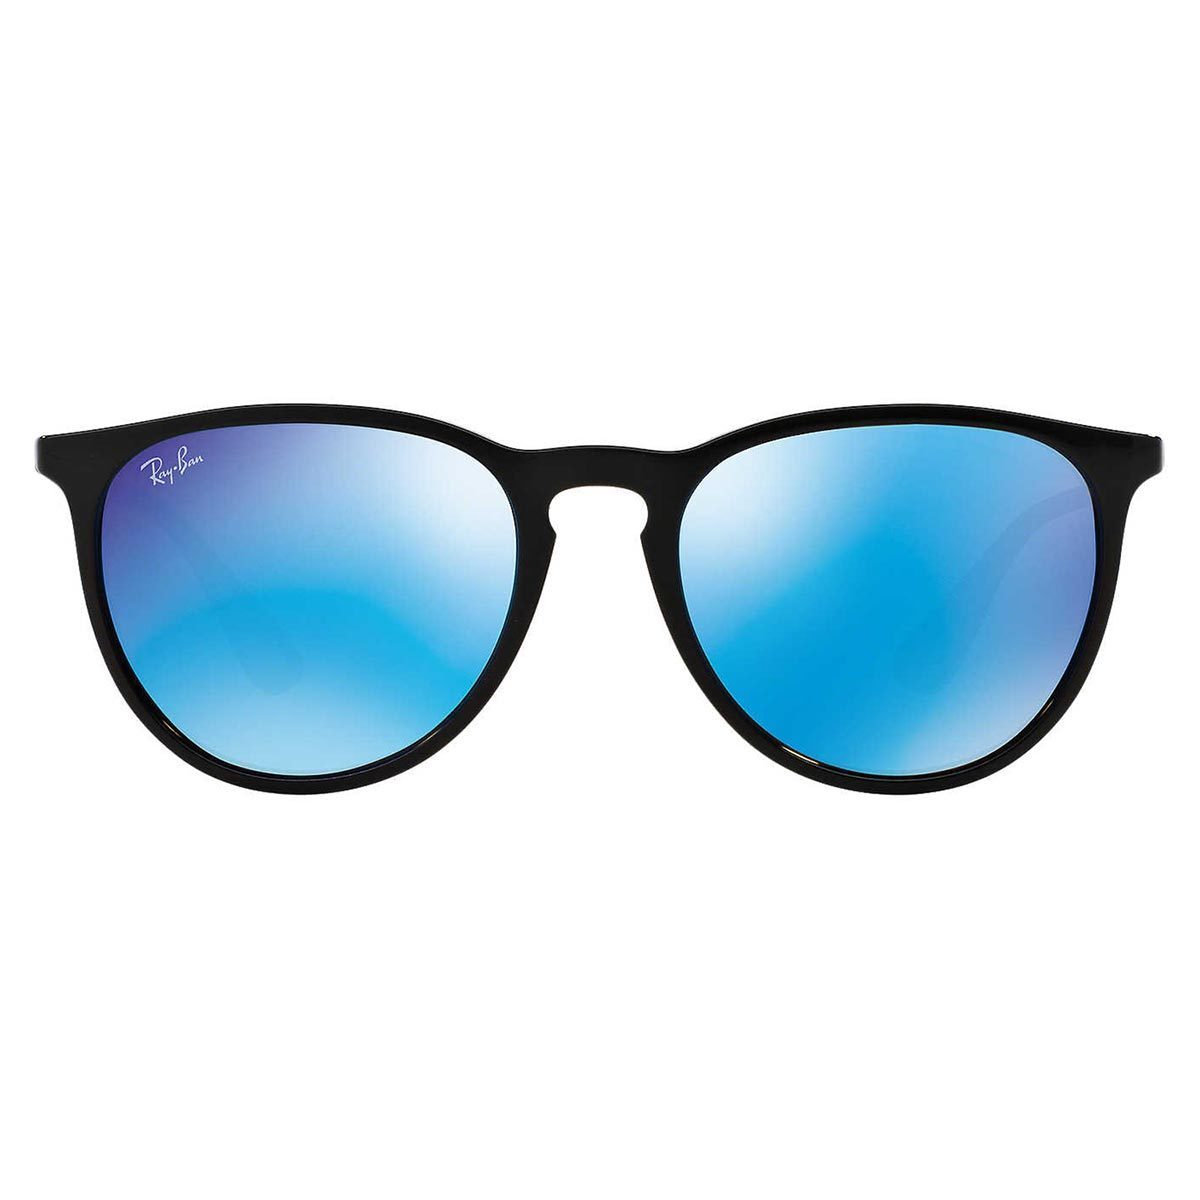 Ray Ban Sunglasses For Women Blue furthermore Ray Ban Sunglasses For Women Blue in addition John Lennon Sunglasses as well Mickey Mouse Wearing Glasses together with Ray Ban Clubmaster Brown. on ray ban vintage sungl